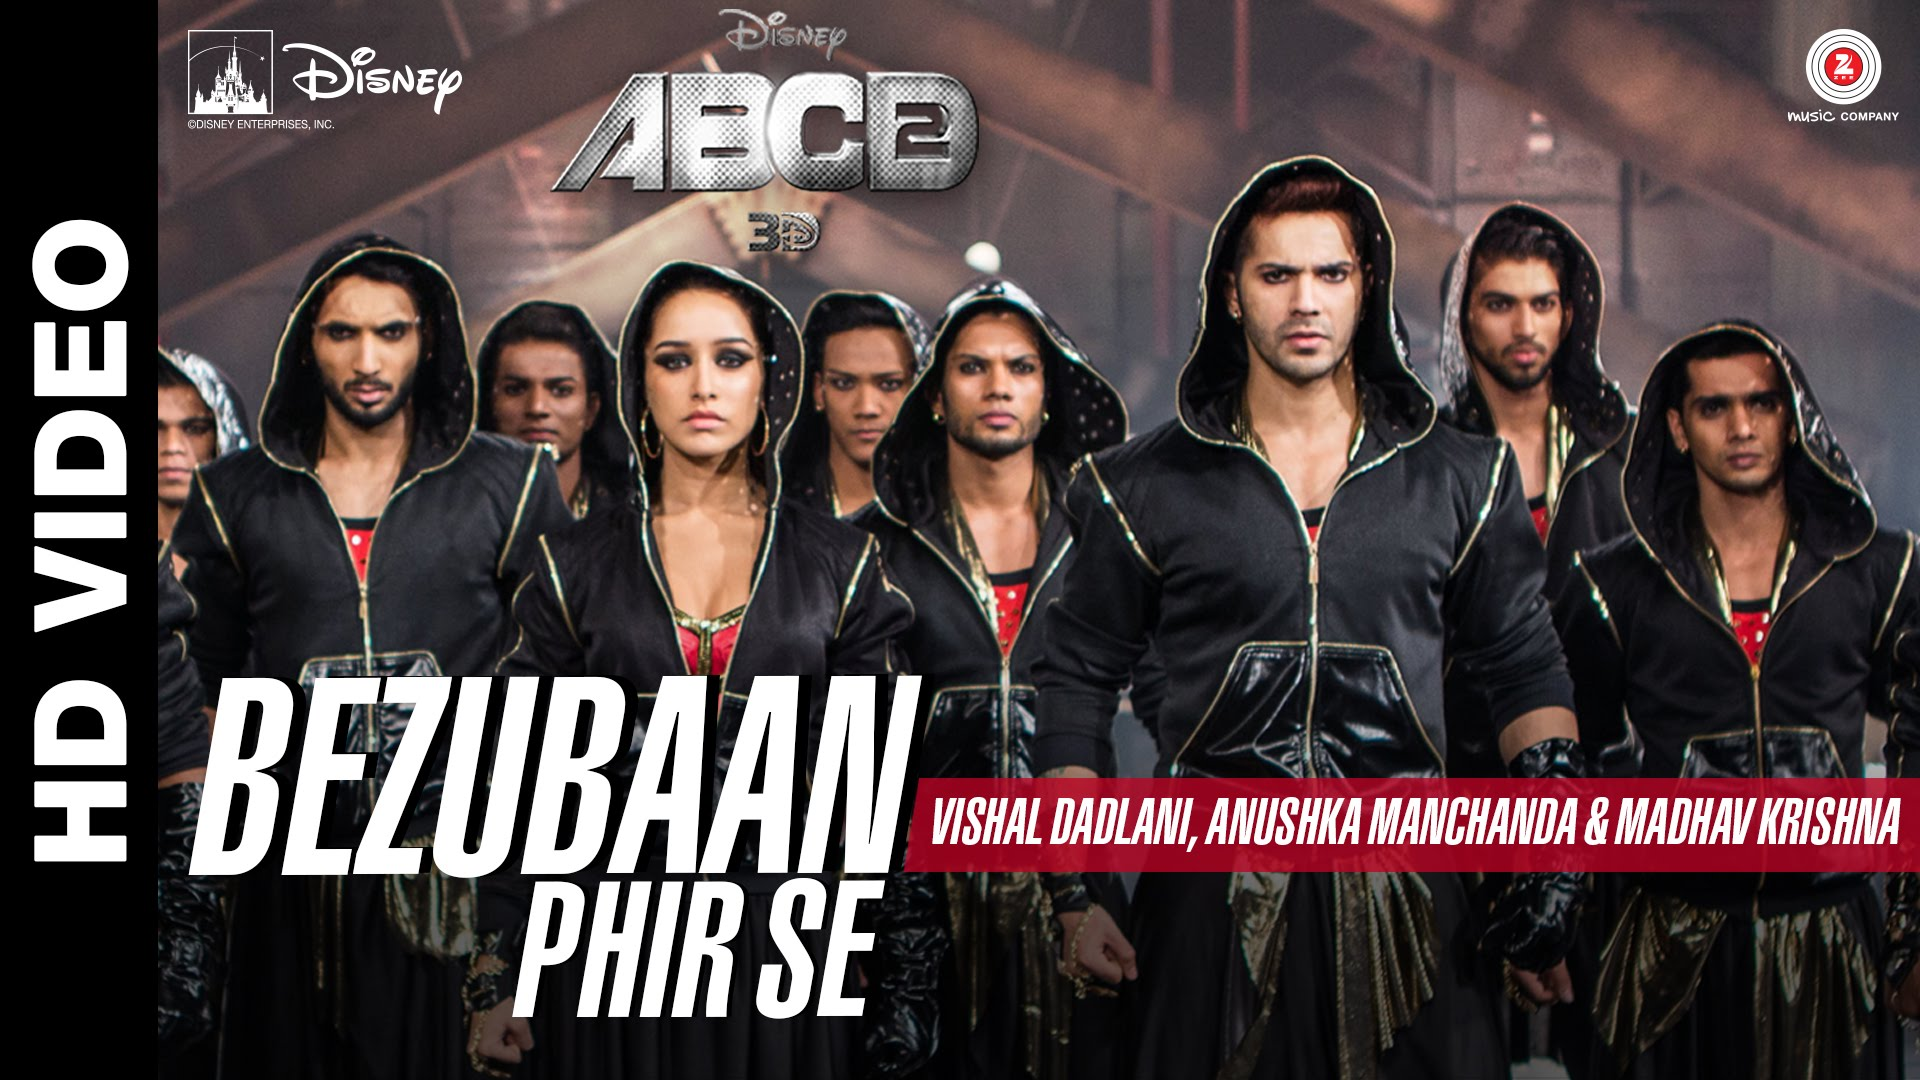 Bezubaan Phir Se Video Song – ABCD 2 | Official Video Song